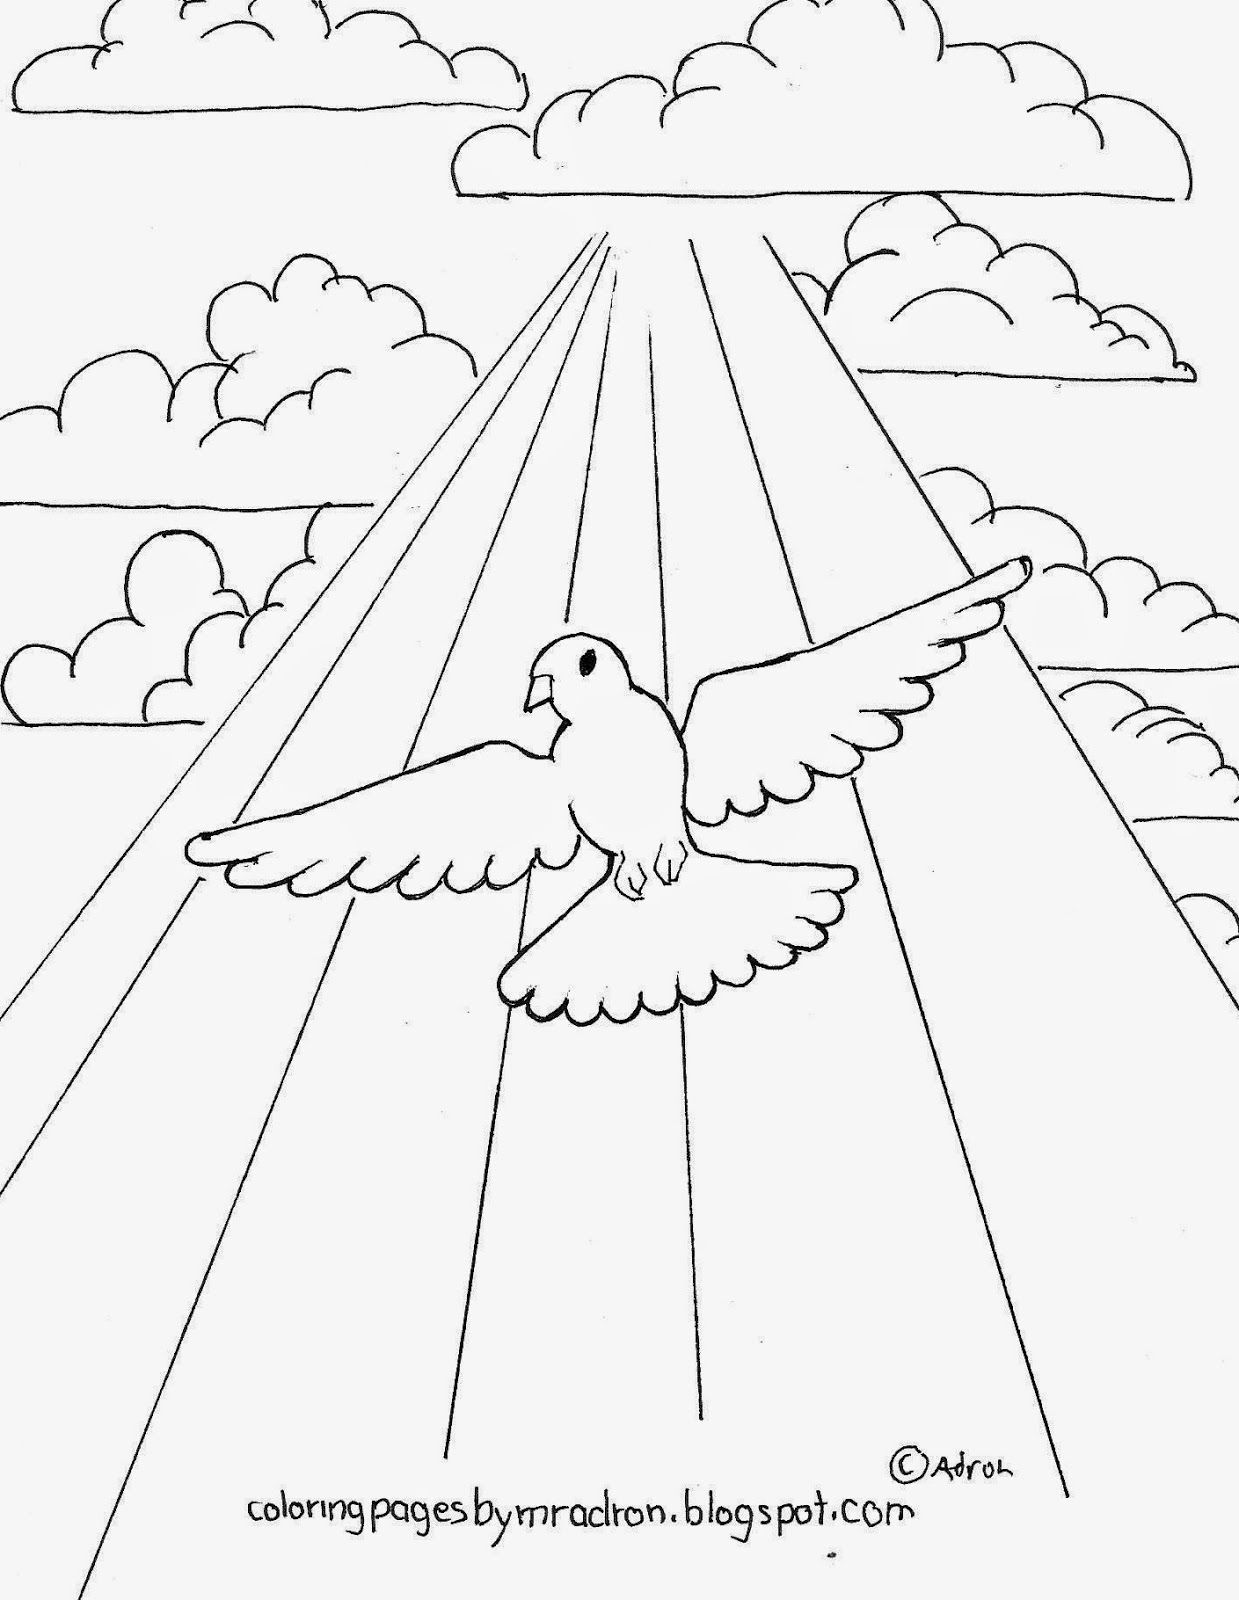 Dove of Peace coloring page. | clip art - doodling | Pinterest ...